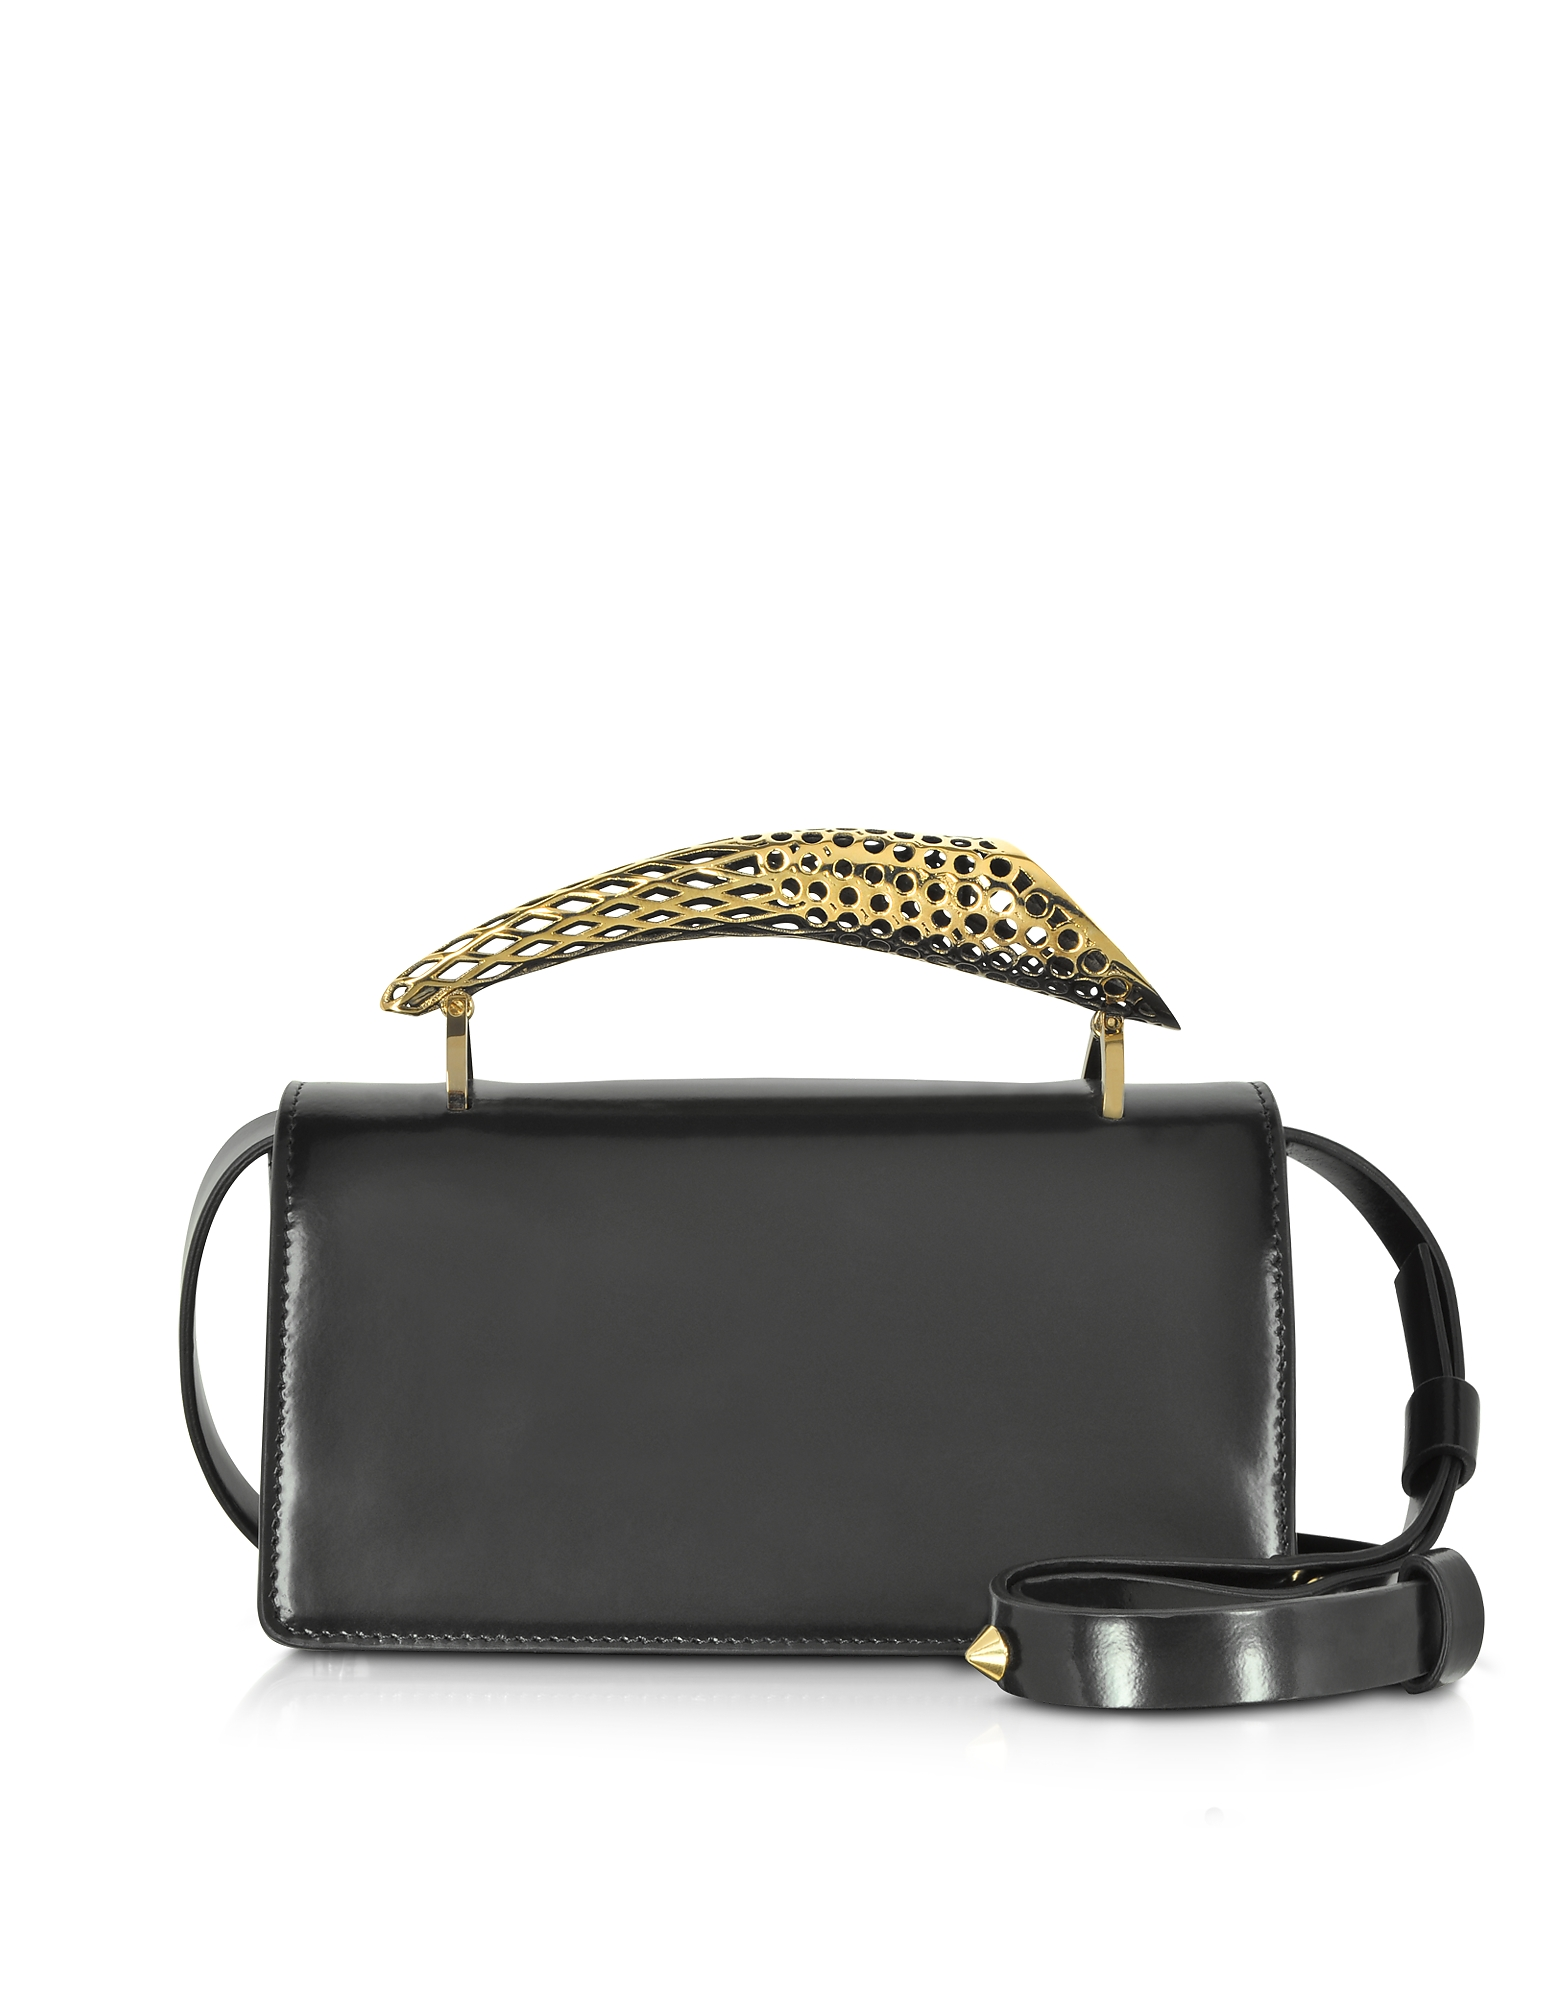 Maissa  Handbags Black Glossy Leather Mini Shoulder Bag w/Gold Brass Mini Horn